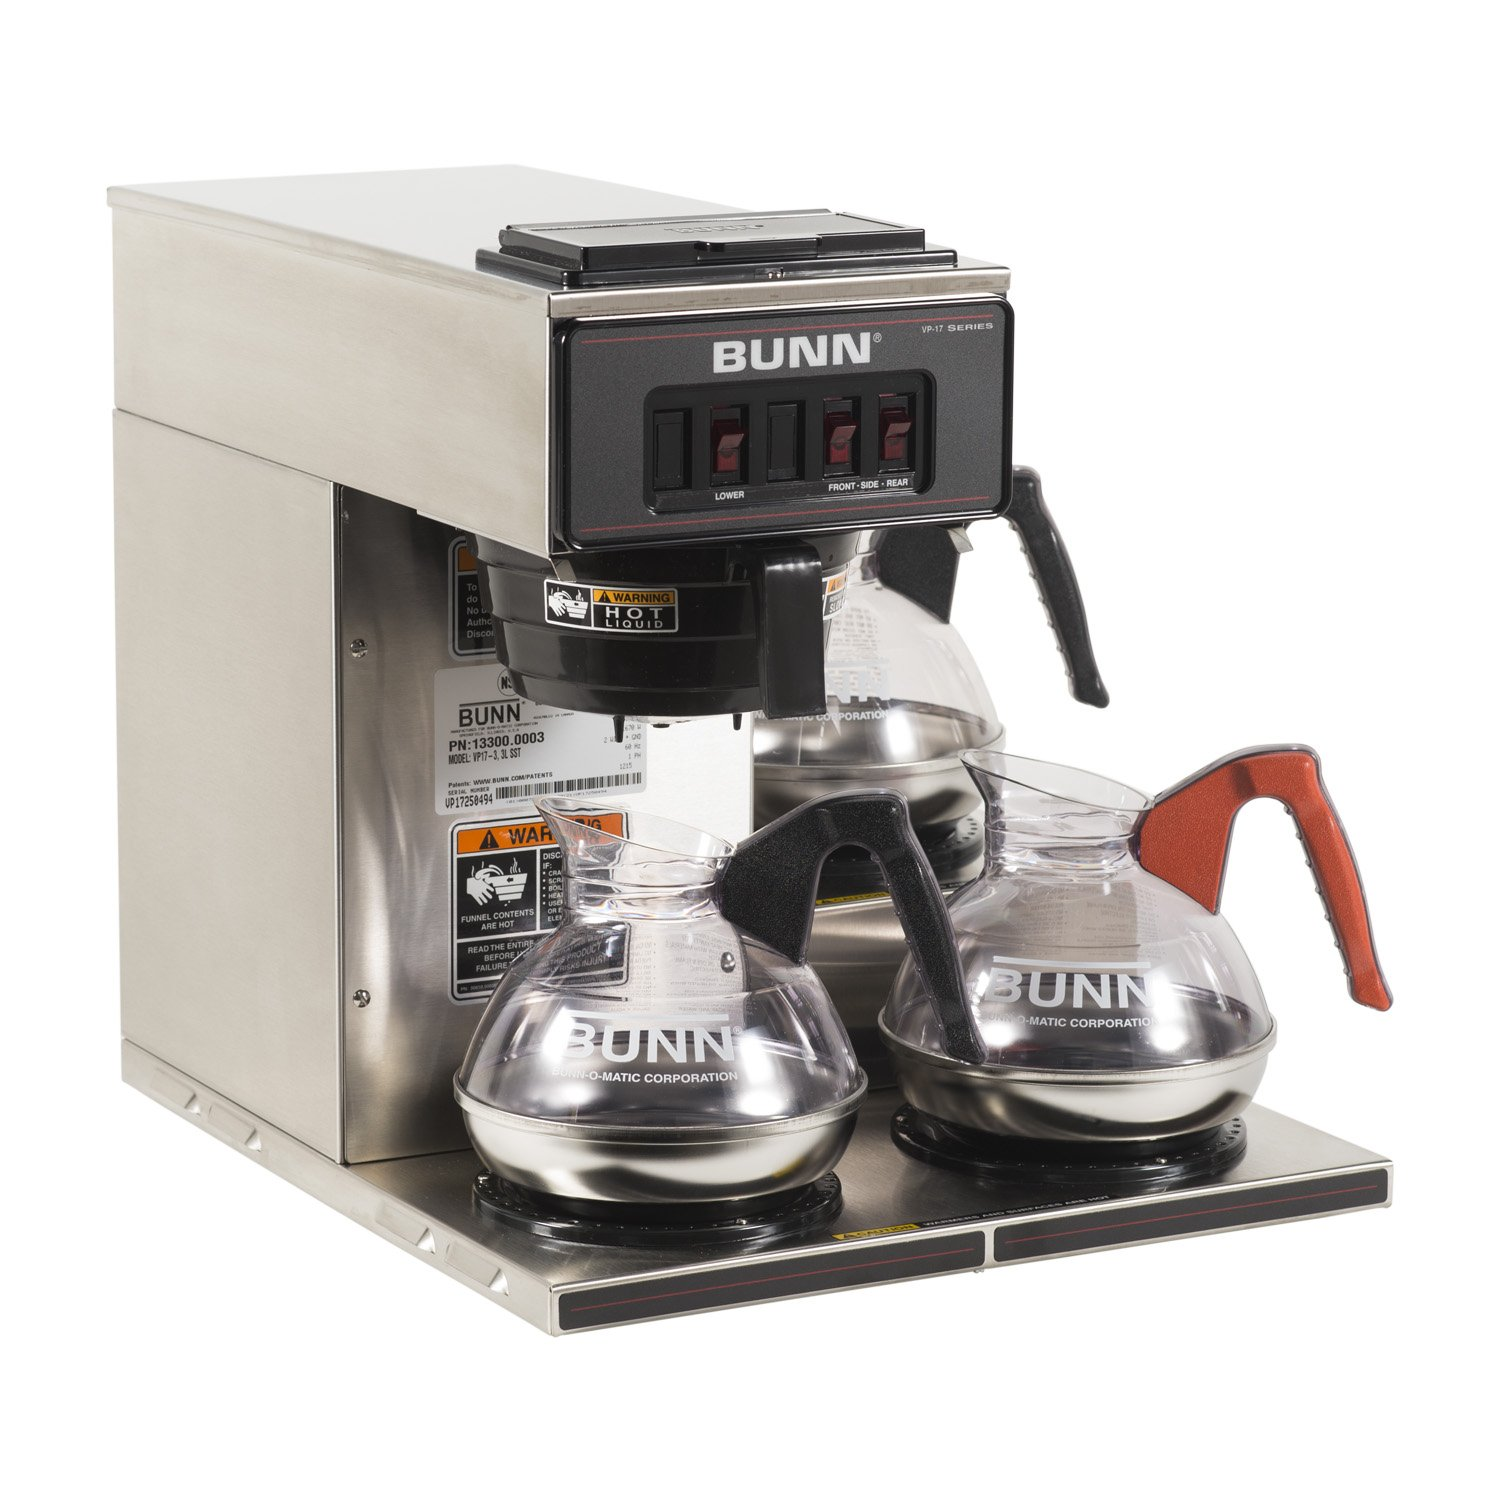 Best Coffee Maker Inexpensive : Restaurant Coffee Maker BUNN Commercial Best Machine Cheap w Three Lower Warmers eBay